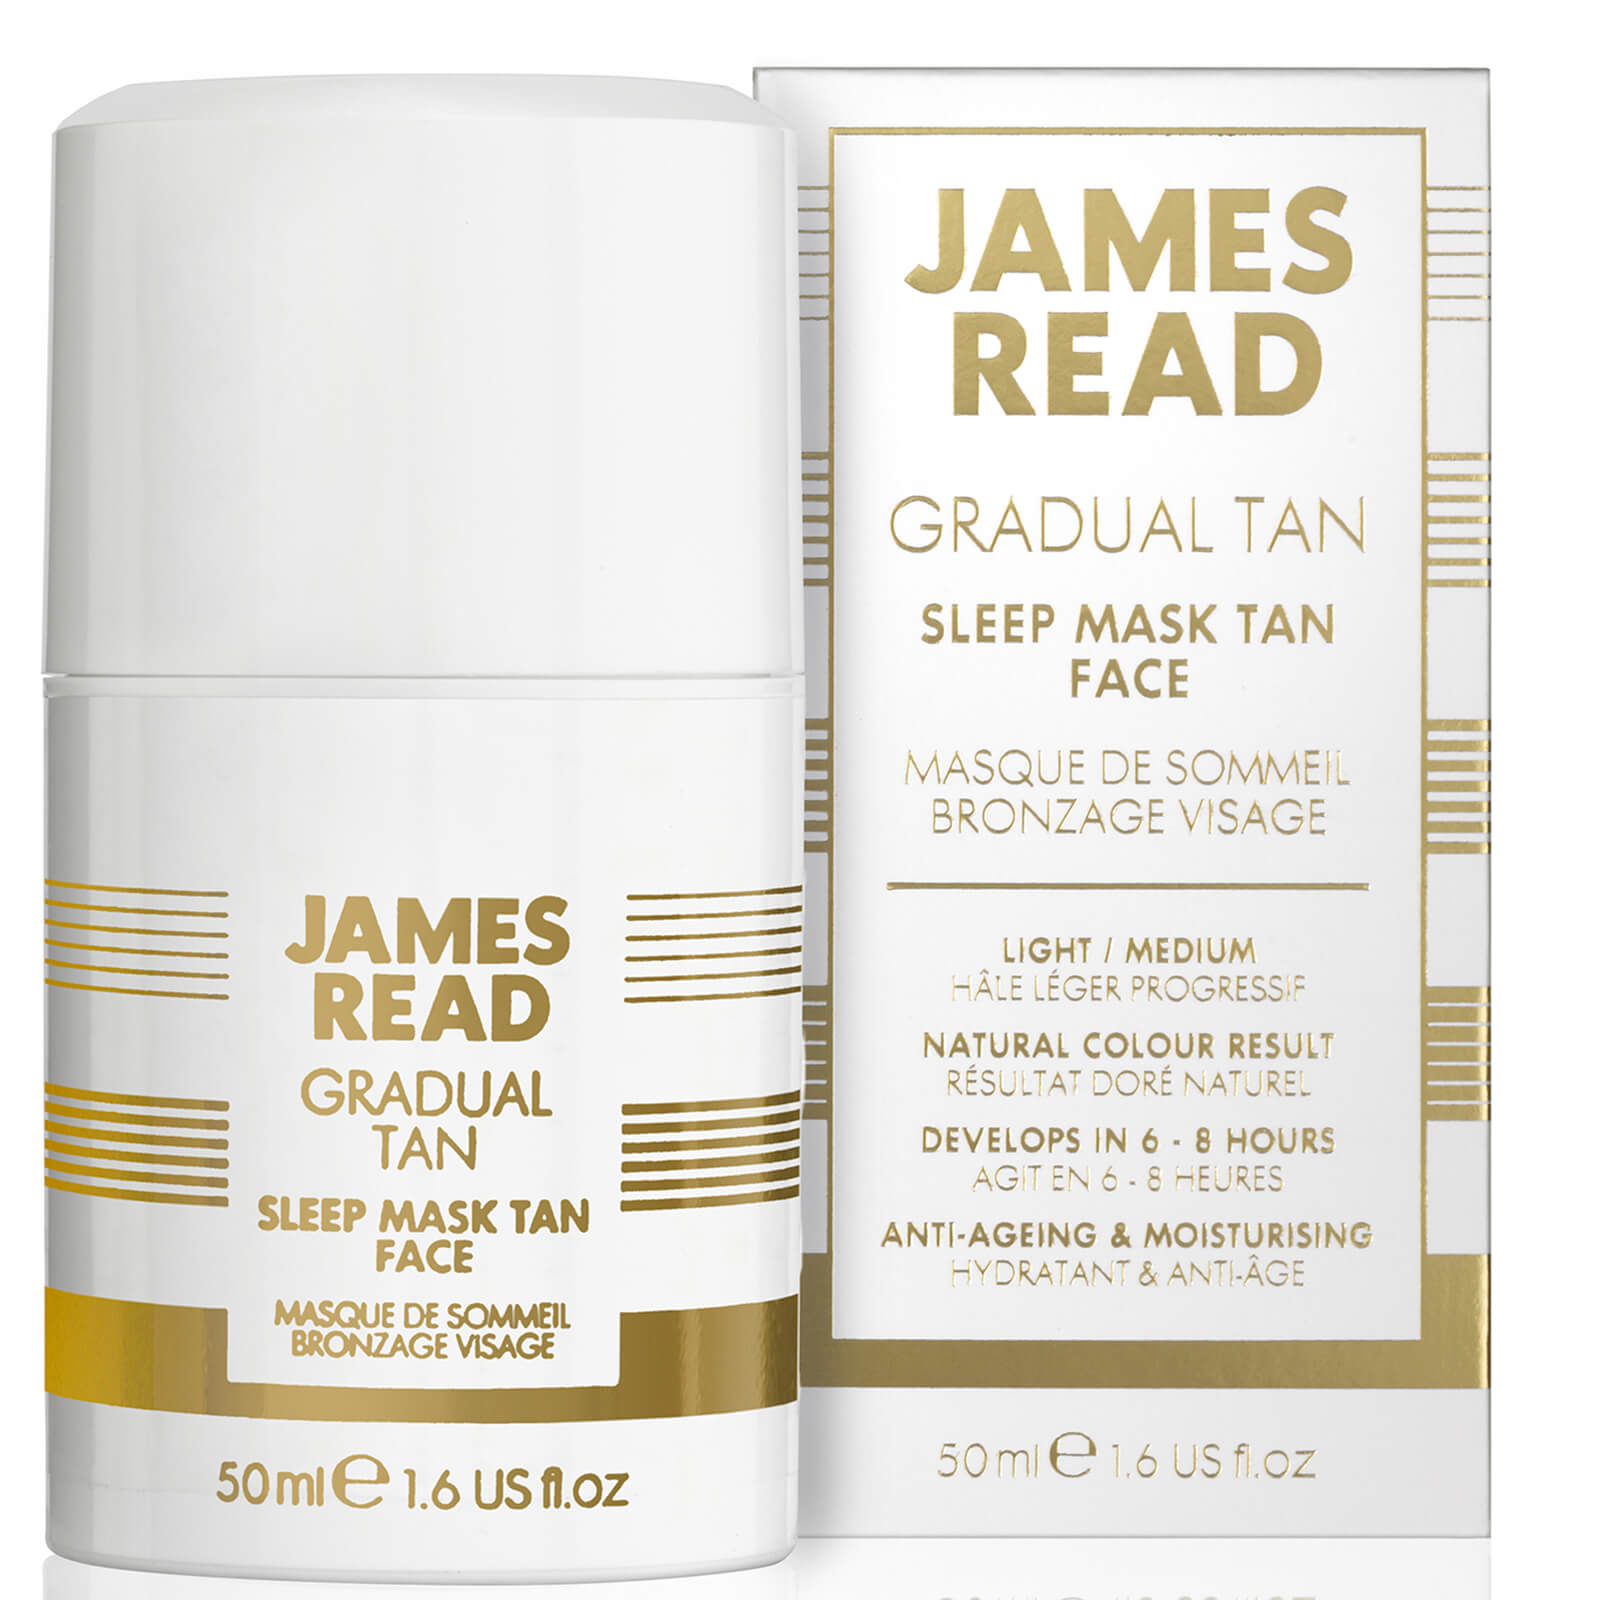 James Read Sleep Mask Tan Face 50ml Free Delivery